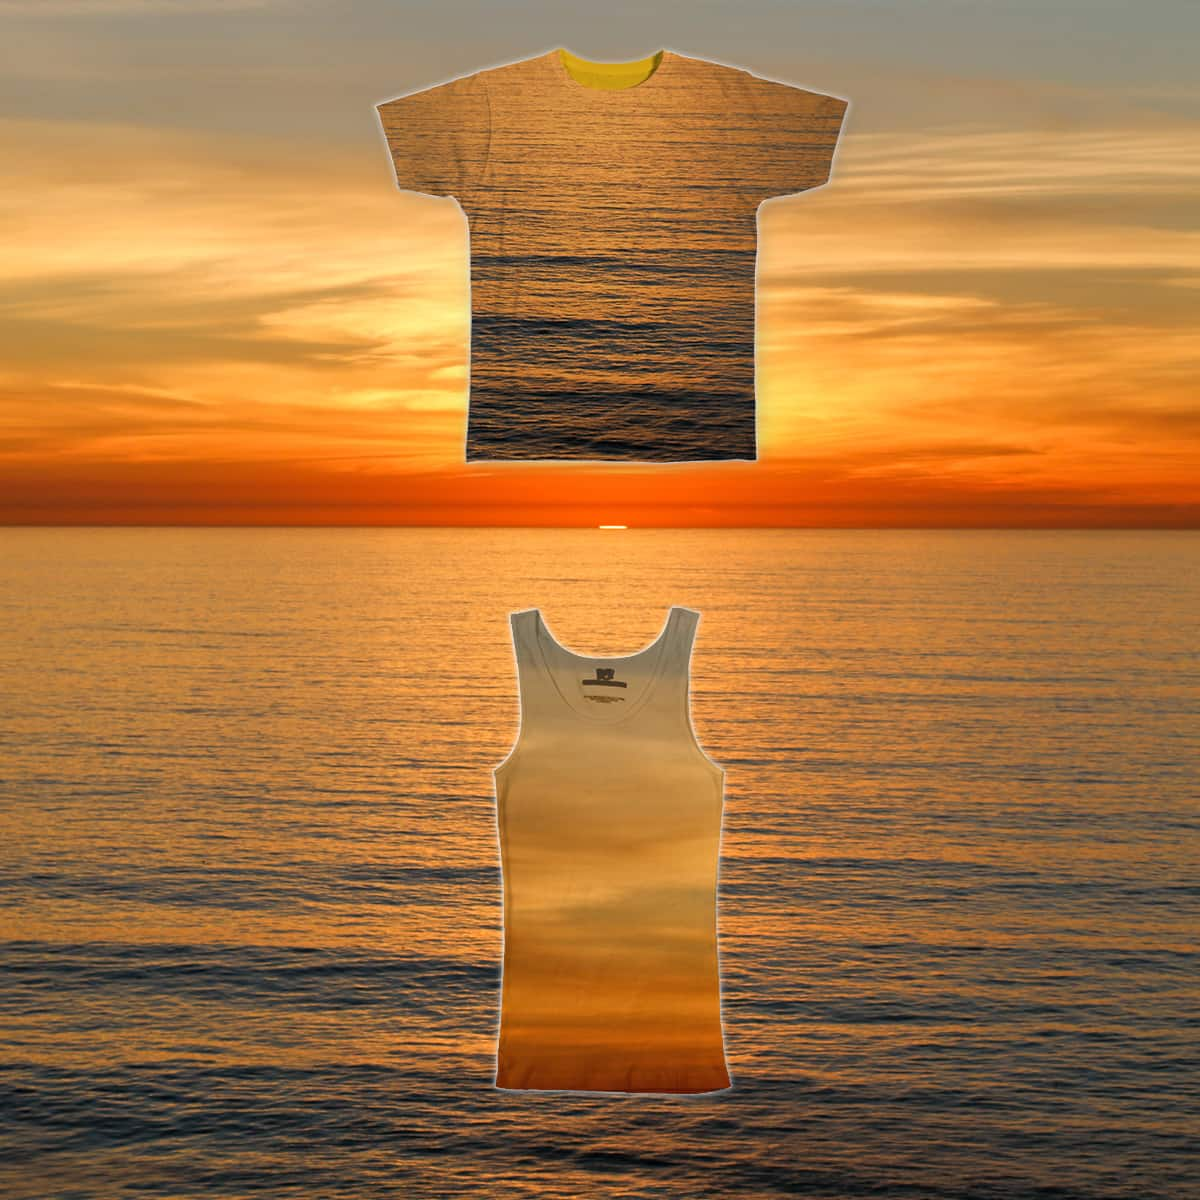 Pacific Sunset by cshimala on Threadless